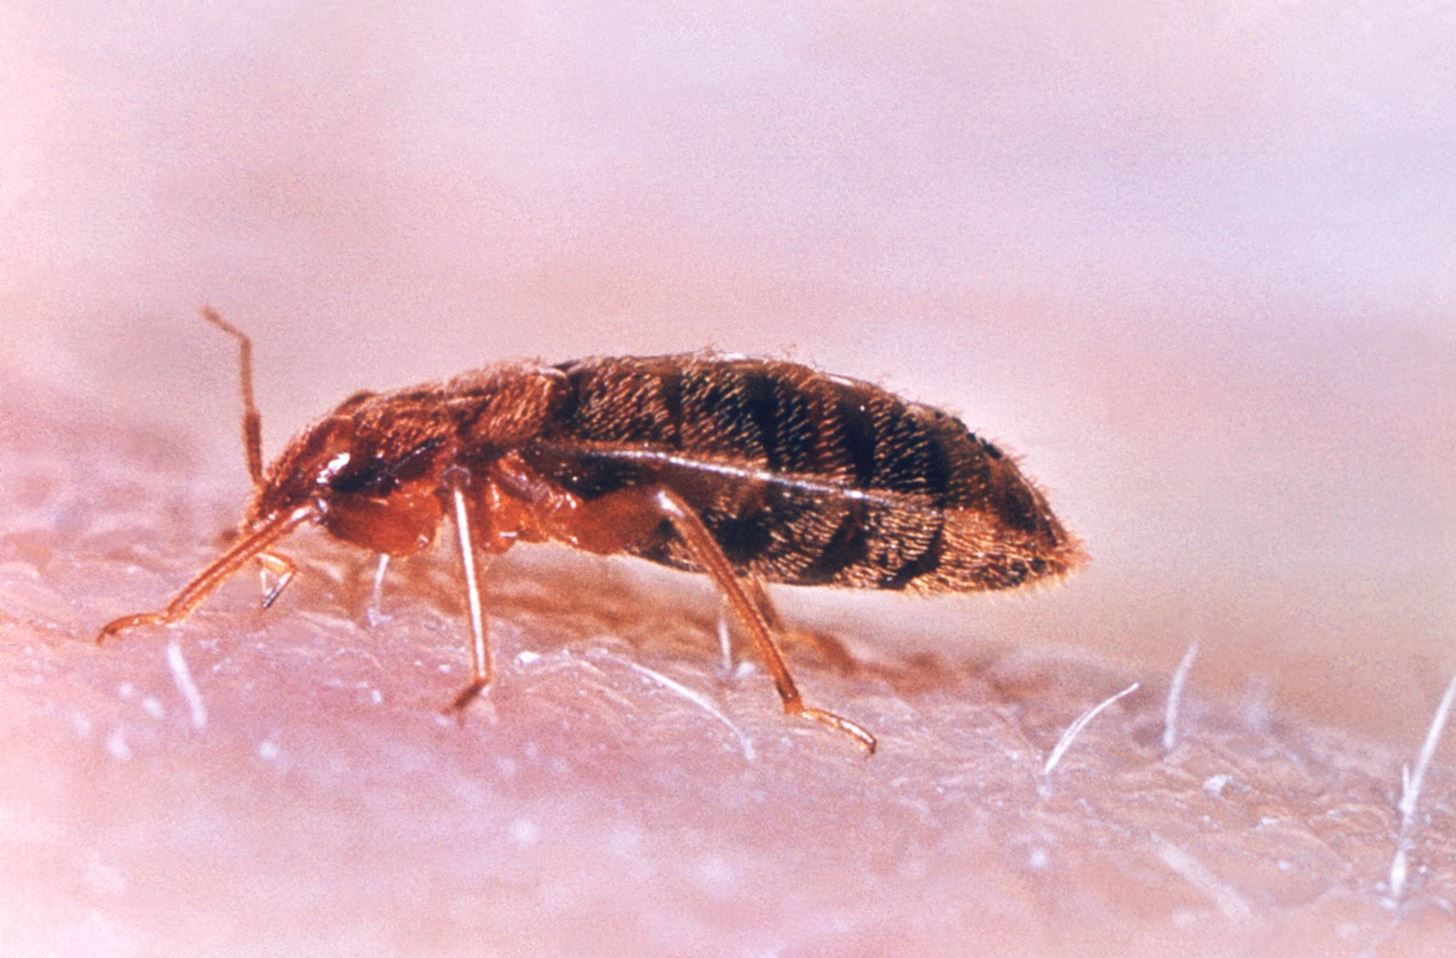 Bed Bugs Are Becoming Resistant to All of Our Insecticides—This Fungus Might Help